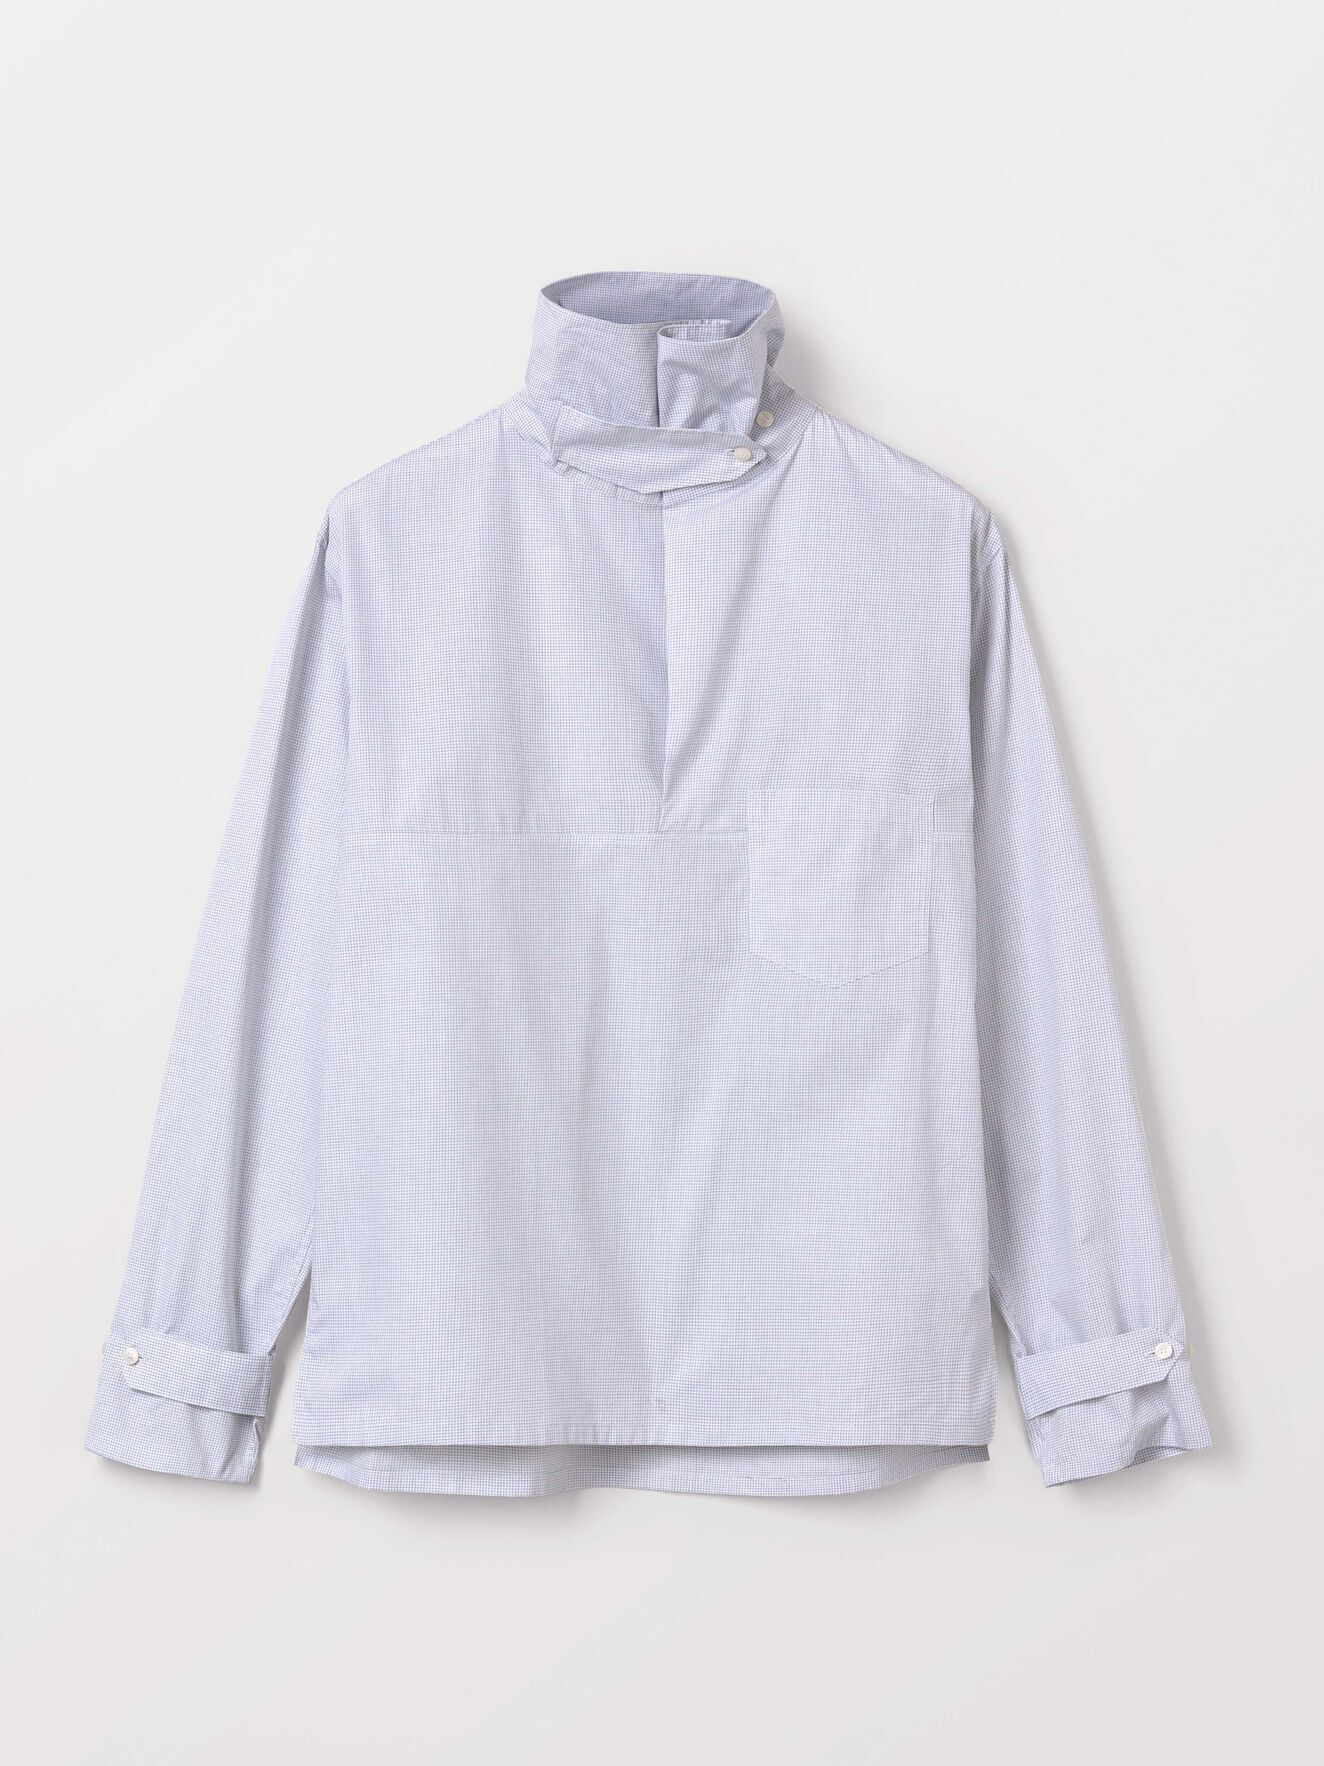 Favian Shirt in Light Ink from Tiger of Sweden